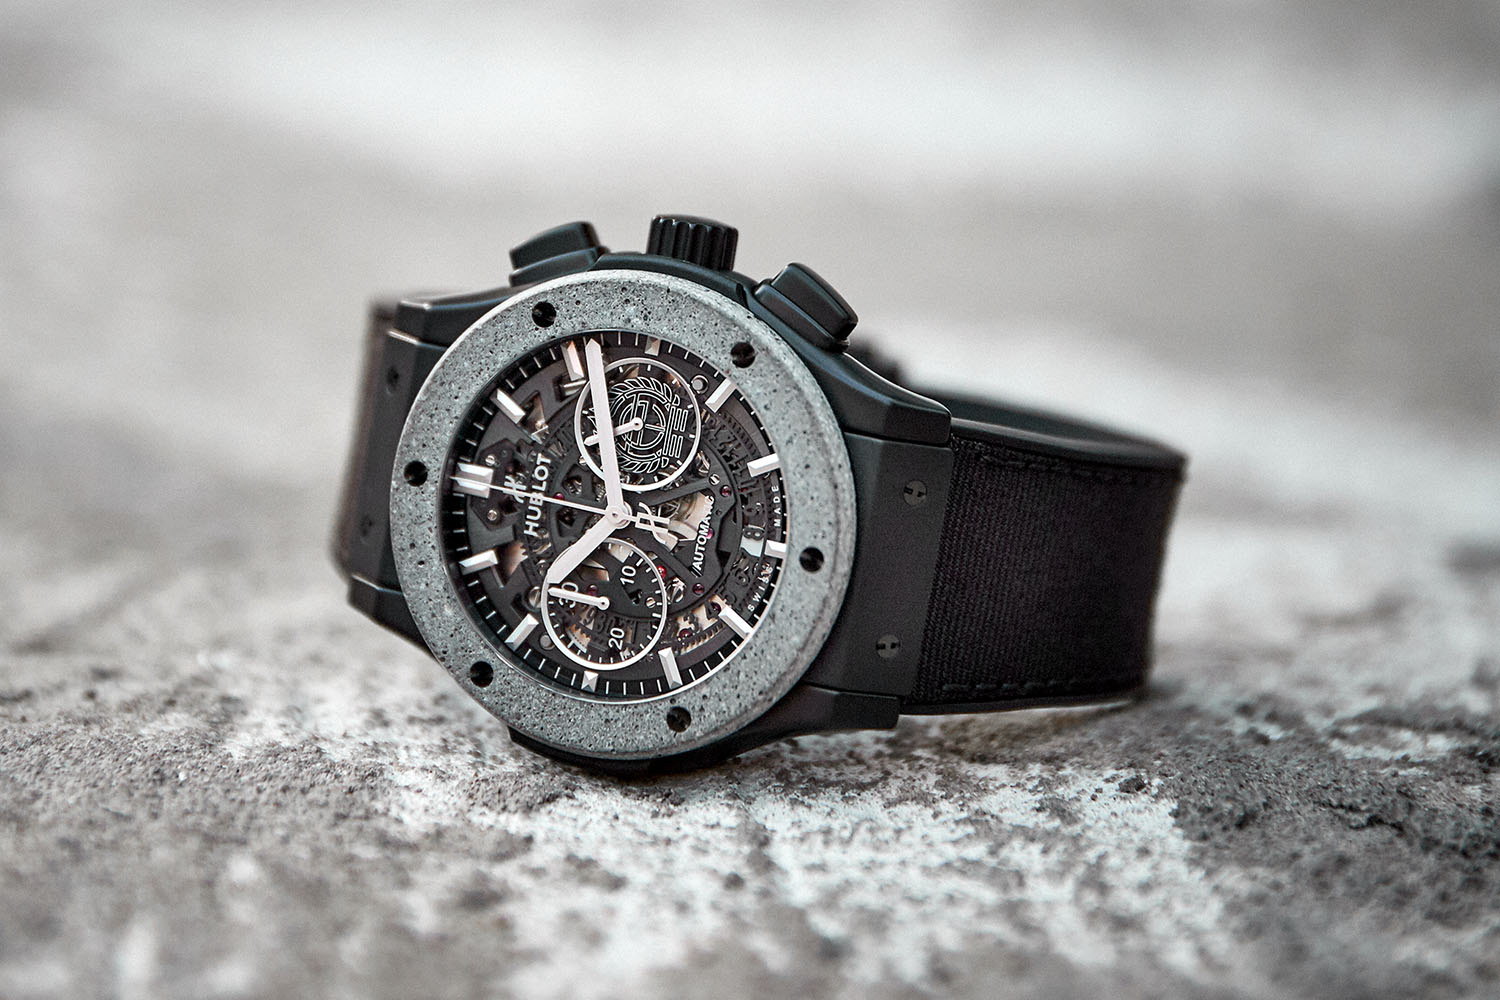 Hublot Classic Fusion Aerofusion Chronograph Concrete Jungle made with Artist Tristan Eaton